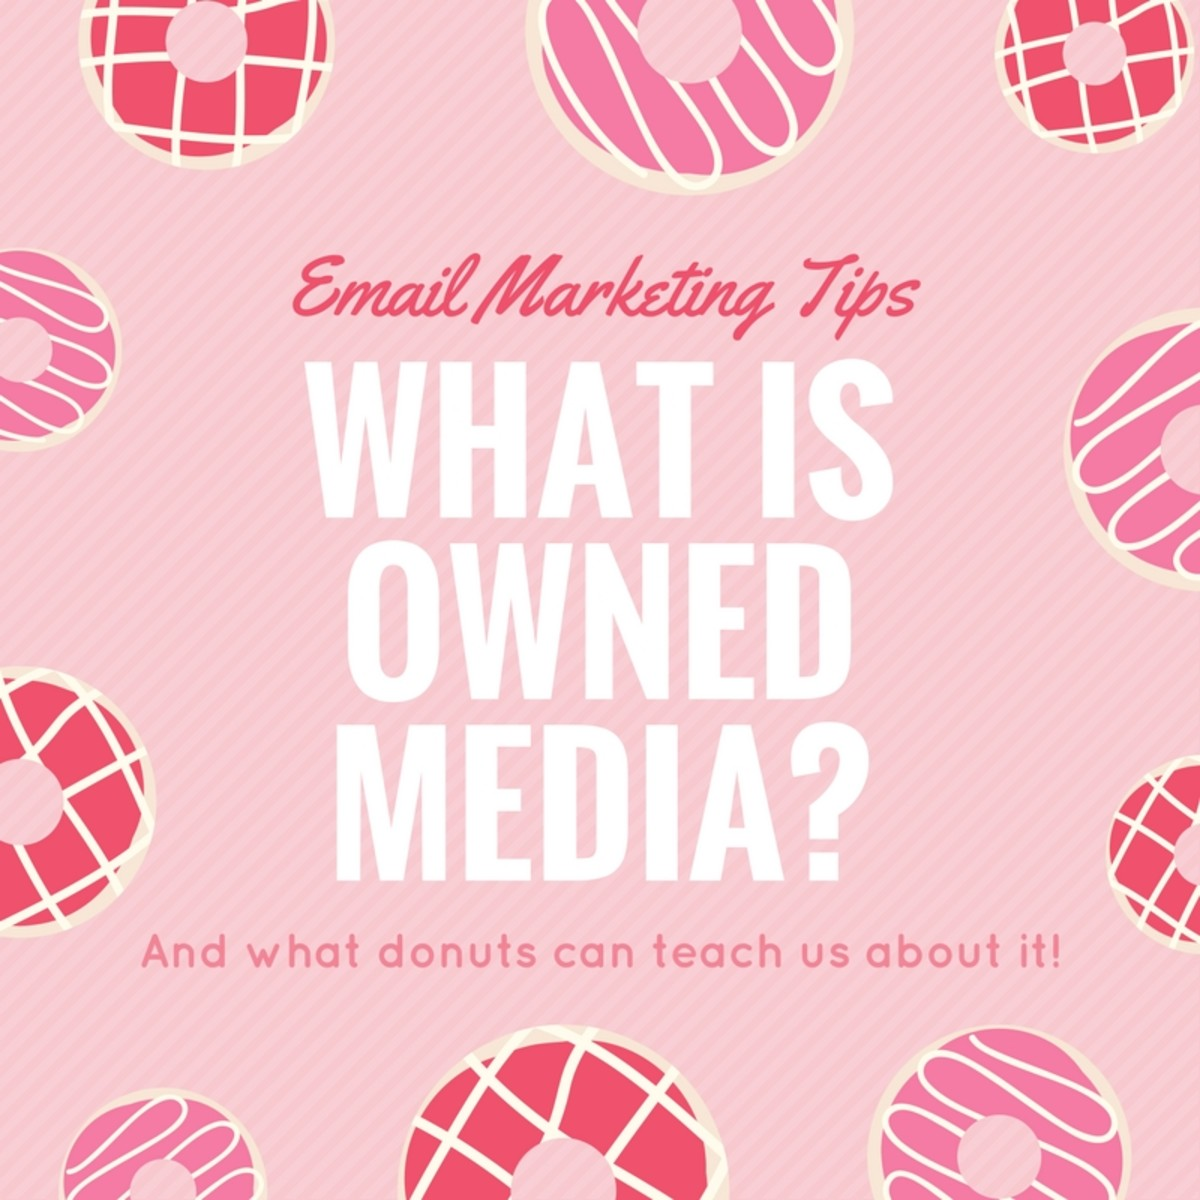 Learn what owned media is and how to use it to your advantage!